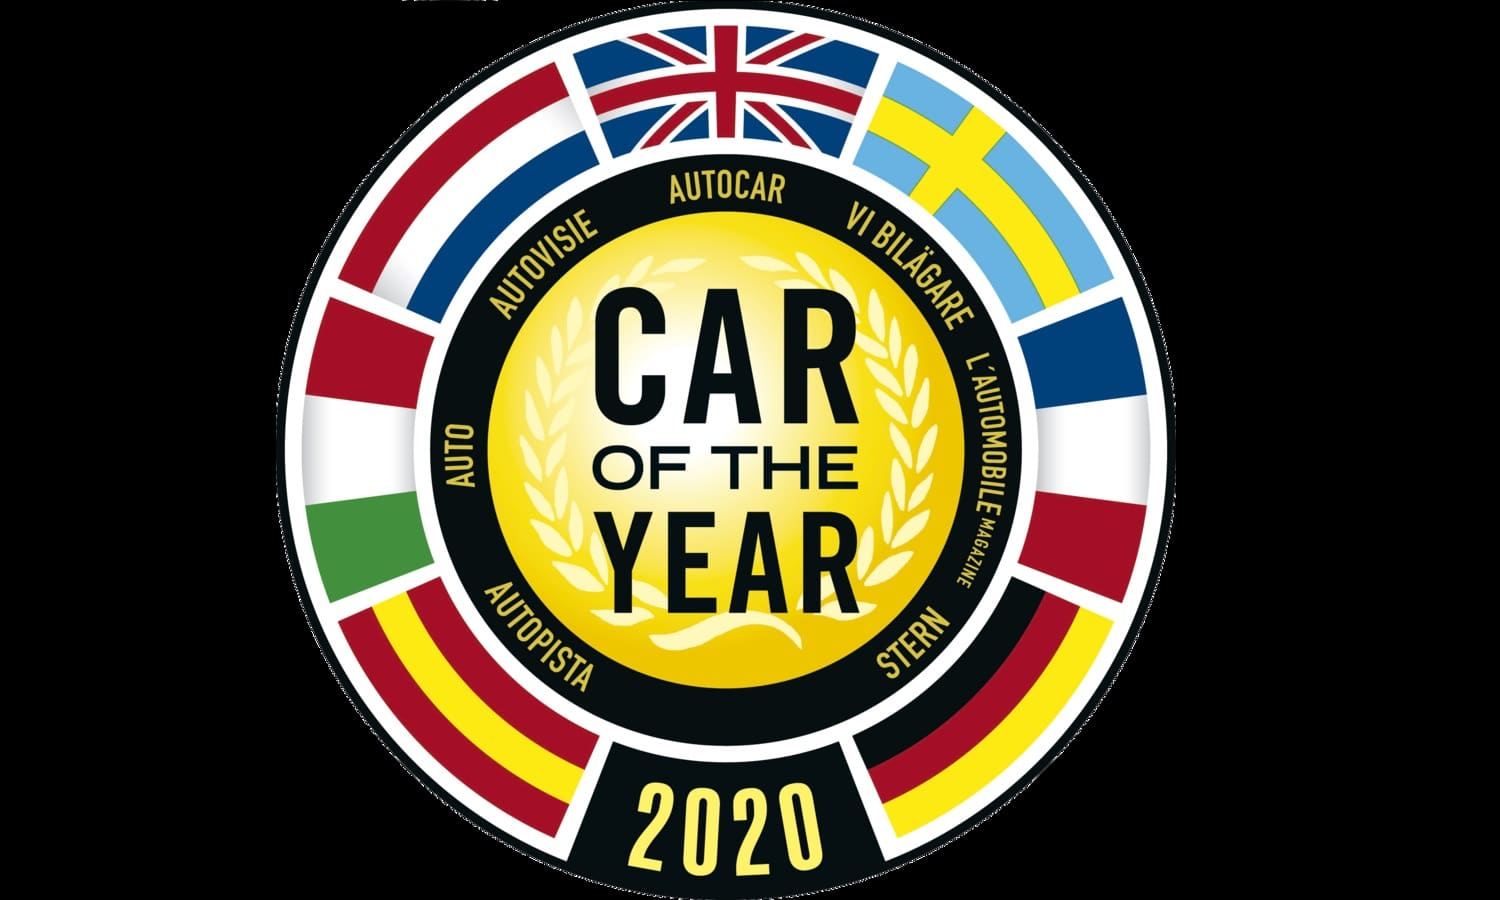 Car of the Year (COTY) 2020 logo